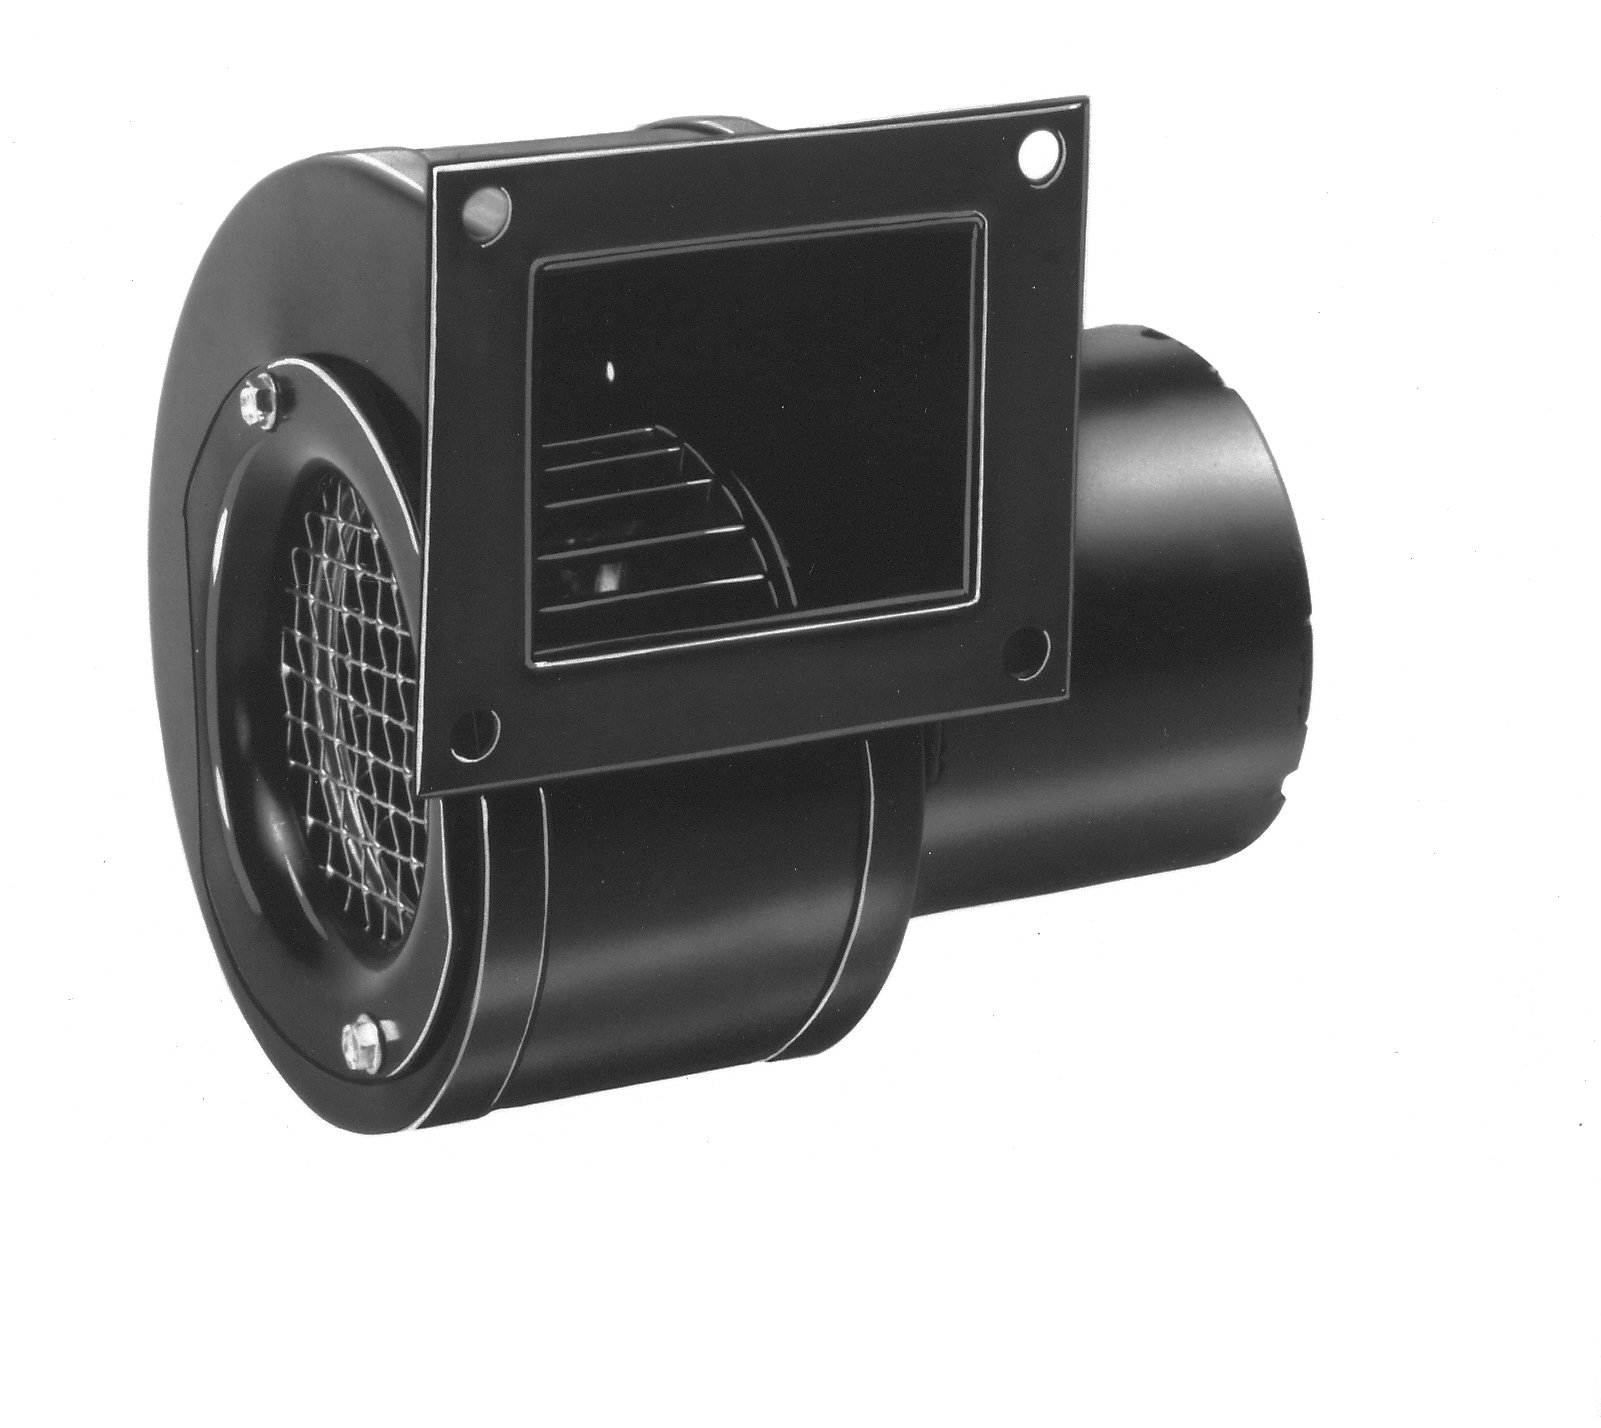 Fasco B30 Centrifugal Blower with Sleeve Bearing, 3,200 rpm, 115V, 60Hz, 0.59 amps, 45 CFM